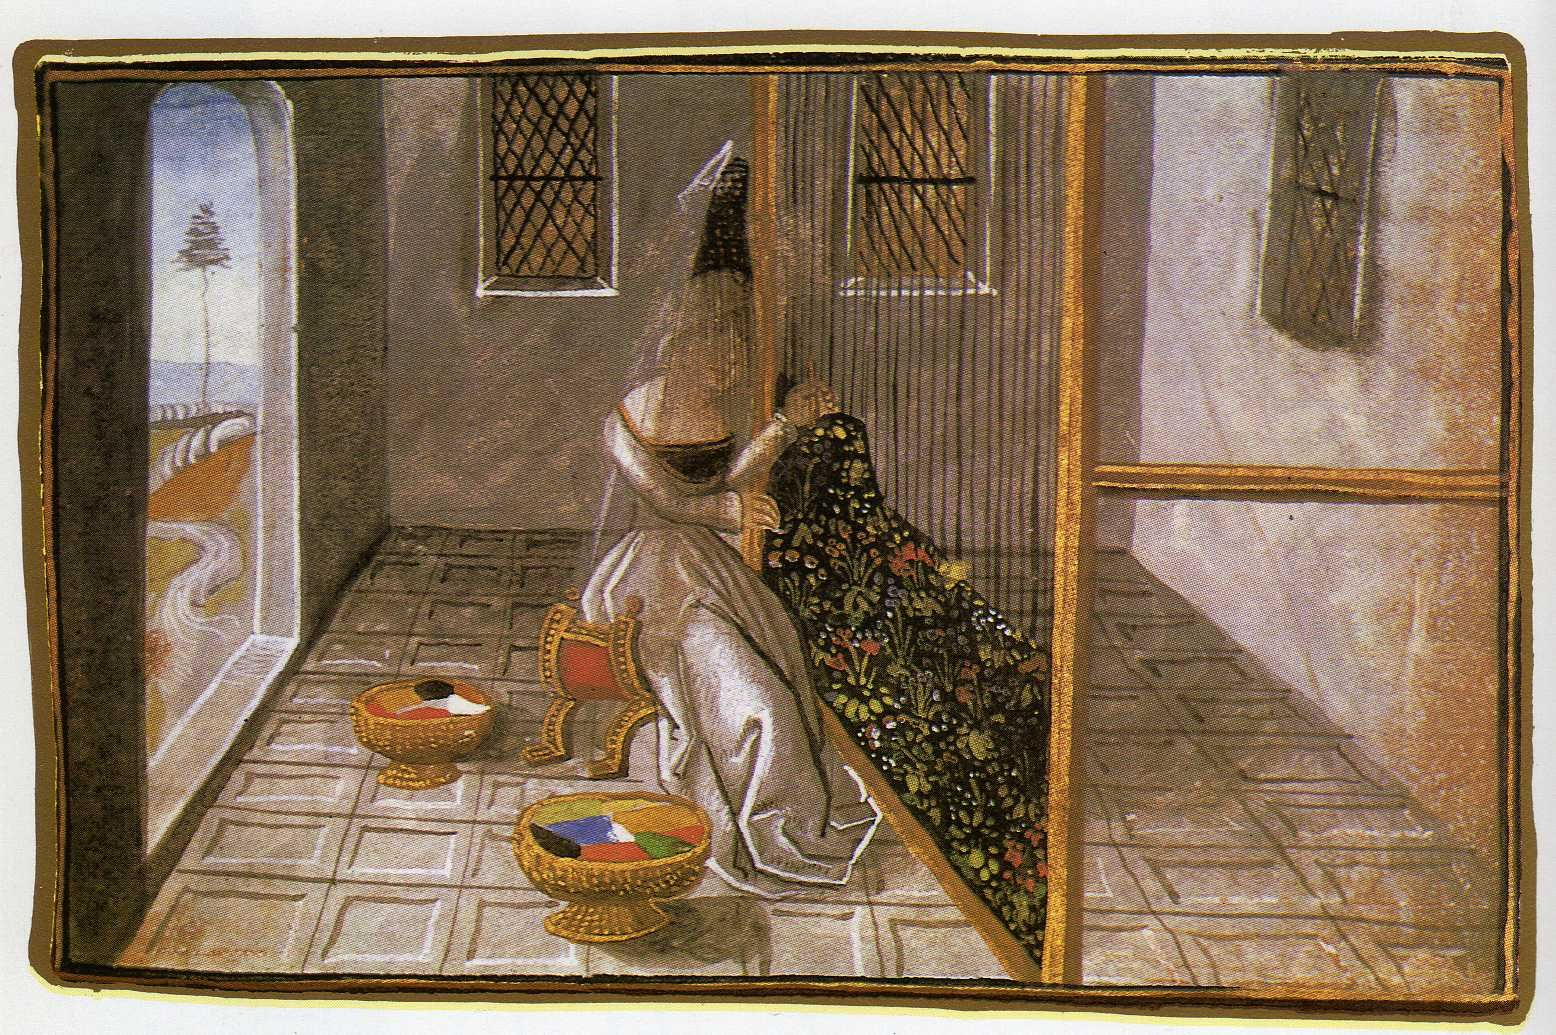 """Le tissage de la tapisserie -- """"Die Lof der Vrouwen"""" a Dutch version of the """"Cité des Dames"""" of Christine de Pisan, written in 1475 at the desire of """"Jan de Baenst Riddere Heere van Sint Joris."""" Vellum; with coarsely executed miniatures and illuminated initials, some of which are unfinished, or the spaces for them left blank. -- British Library, Add MS 20698"""